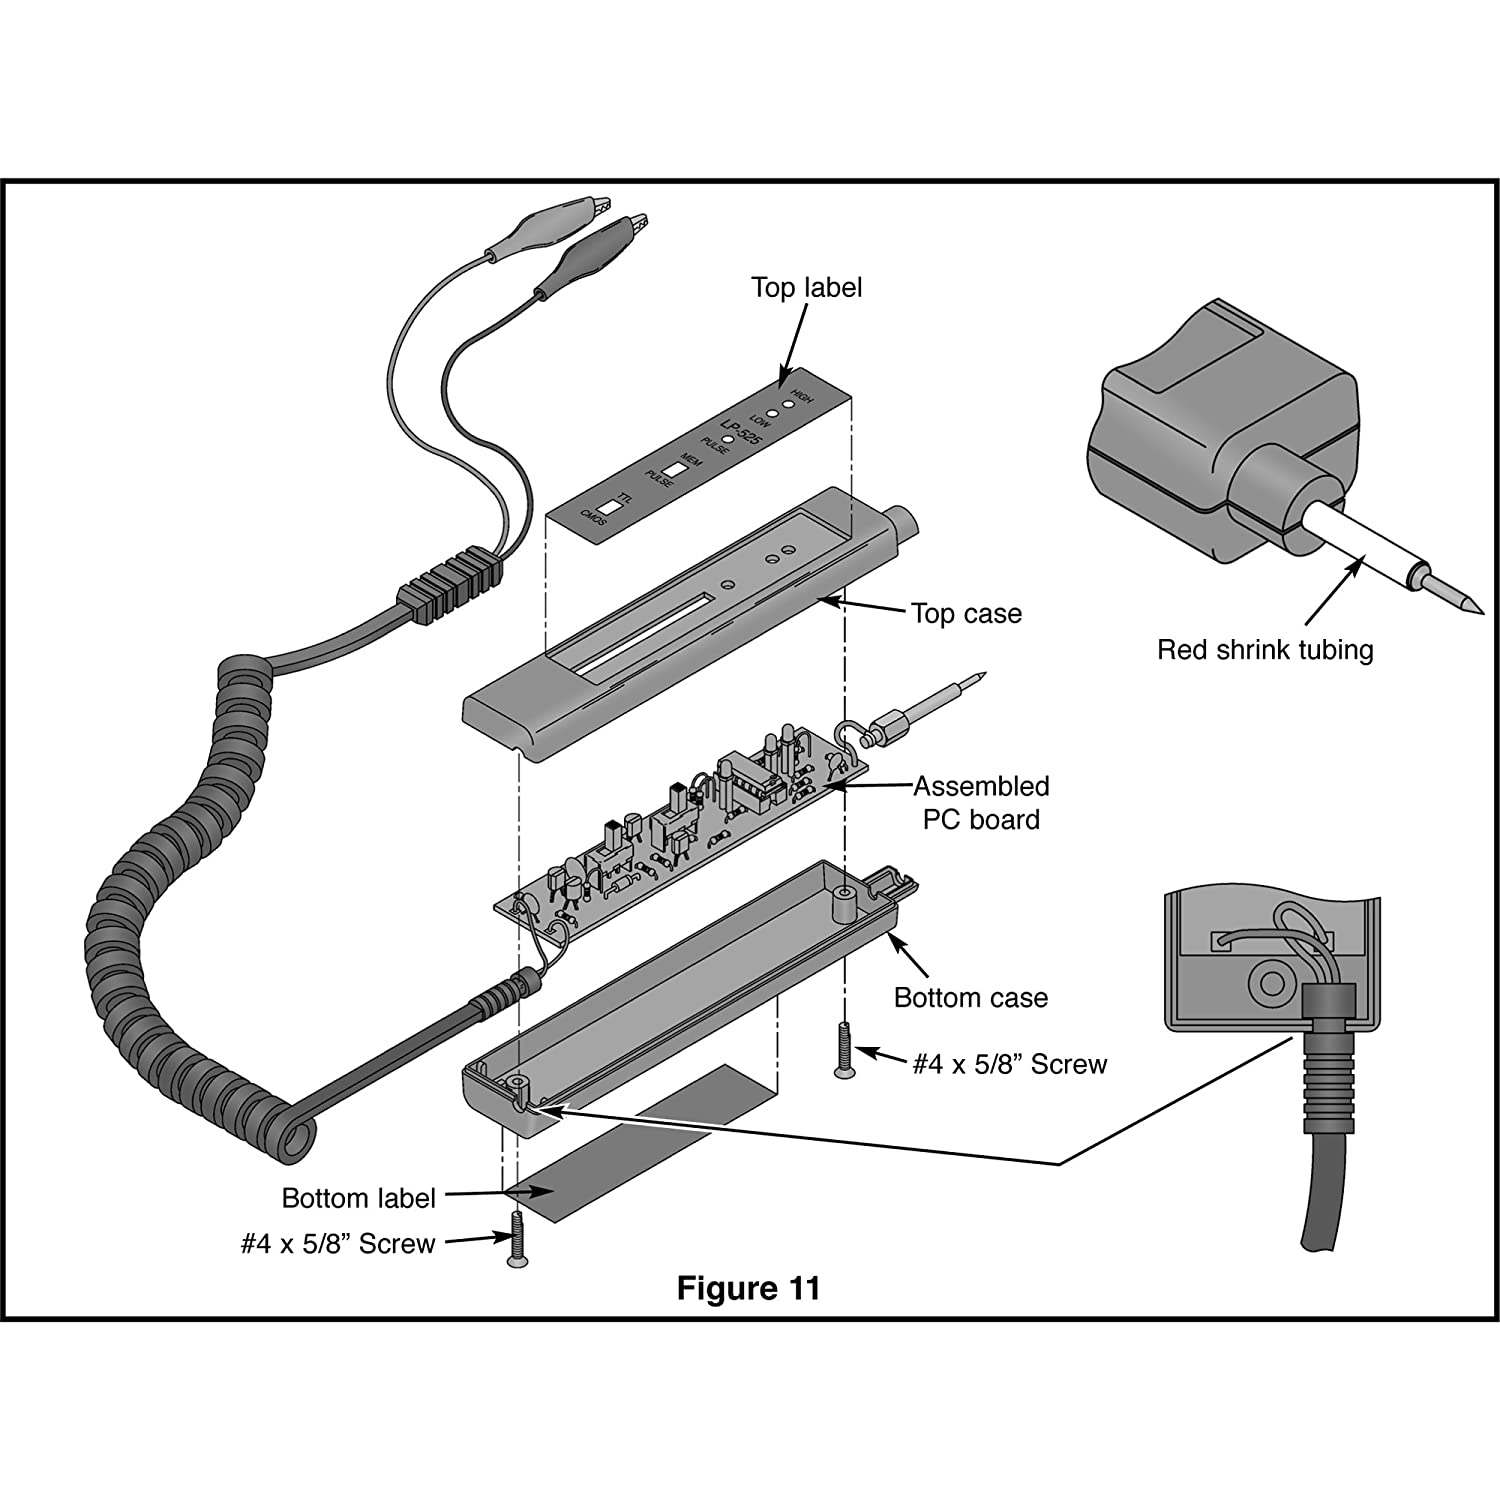 Acura Spa Pump Wiring Worksheet And Diagram Motor Wire Systems Trusted Schematics Rh Roadntracks Com Model 52